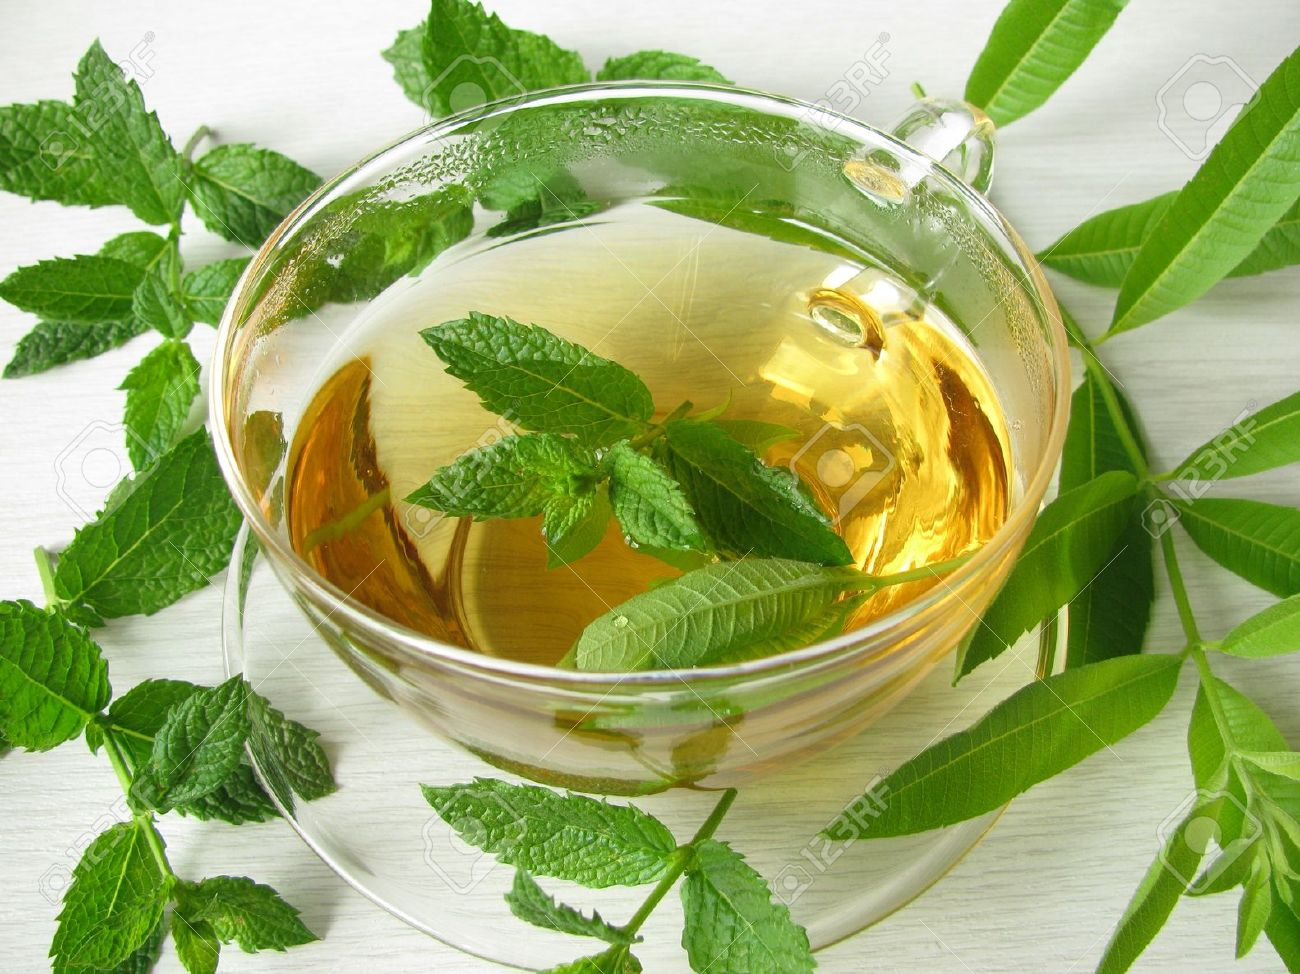 how to make peppermint tea leaves